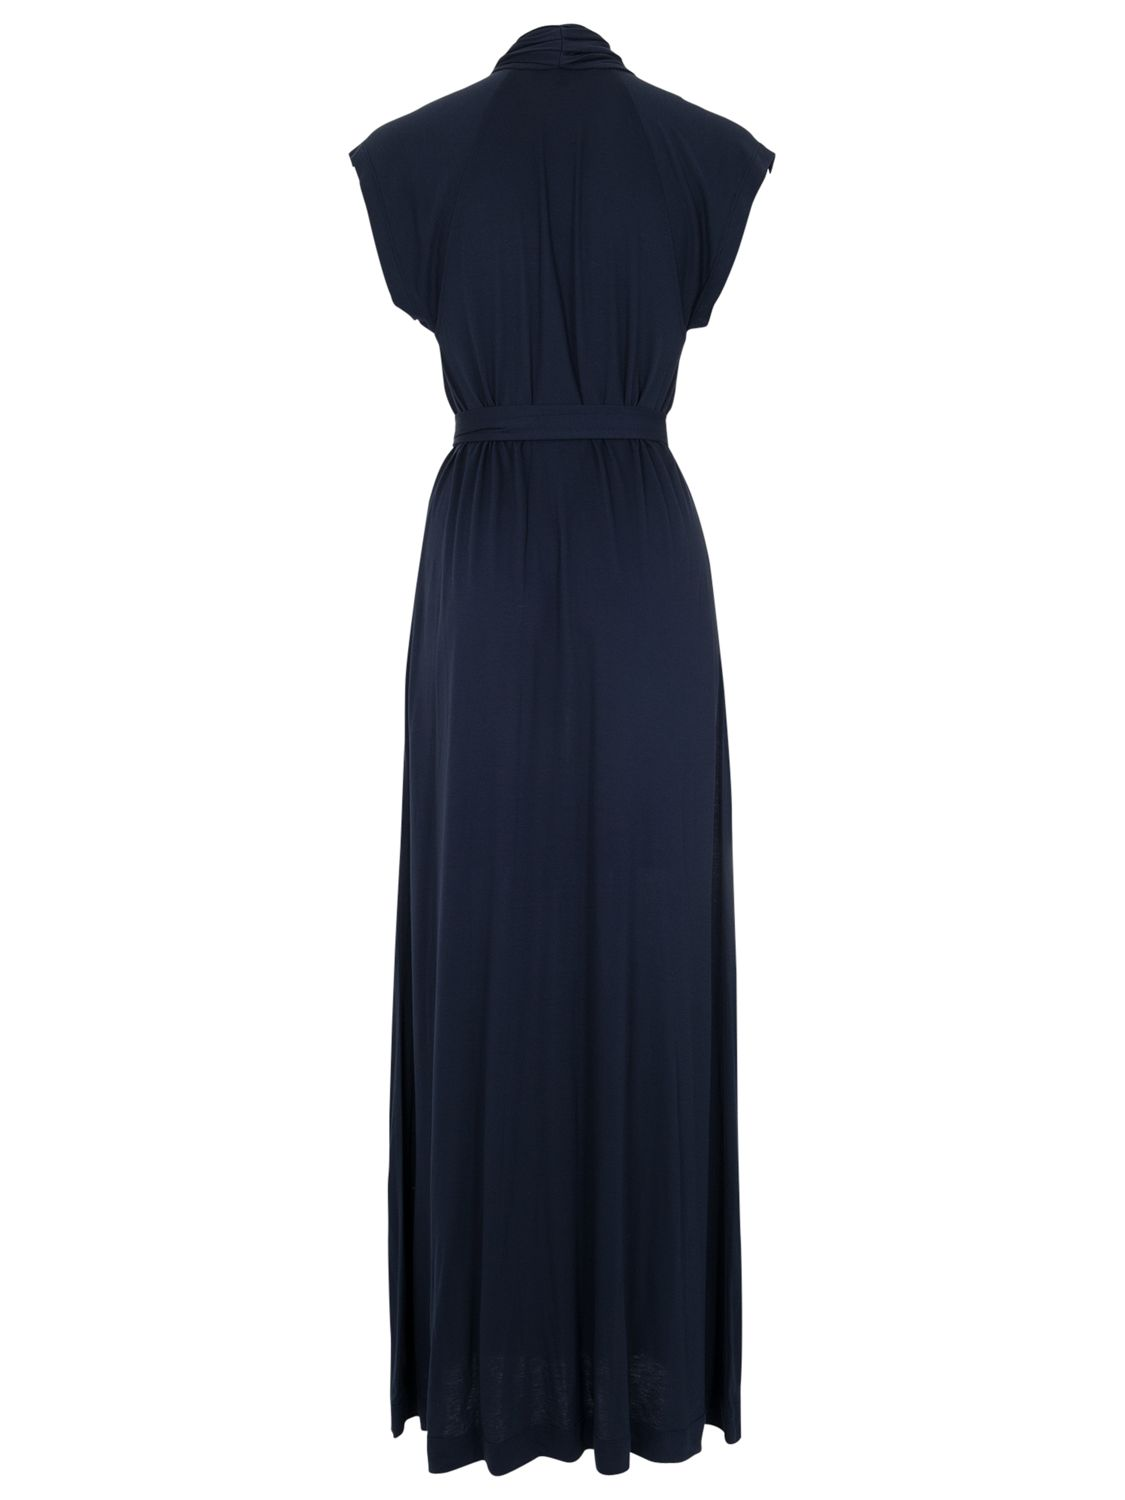 french connection meadow plains maxi dress utility blue, french, connection, meadow, plains, maxi, dress, utility, blue, french connection, 6|16|14|10|12|8, women, womens holiday shop, dresses, womens dresses, maxi dresses, 1523765